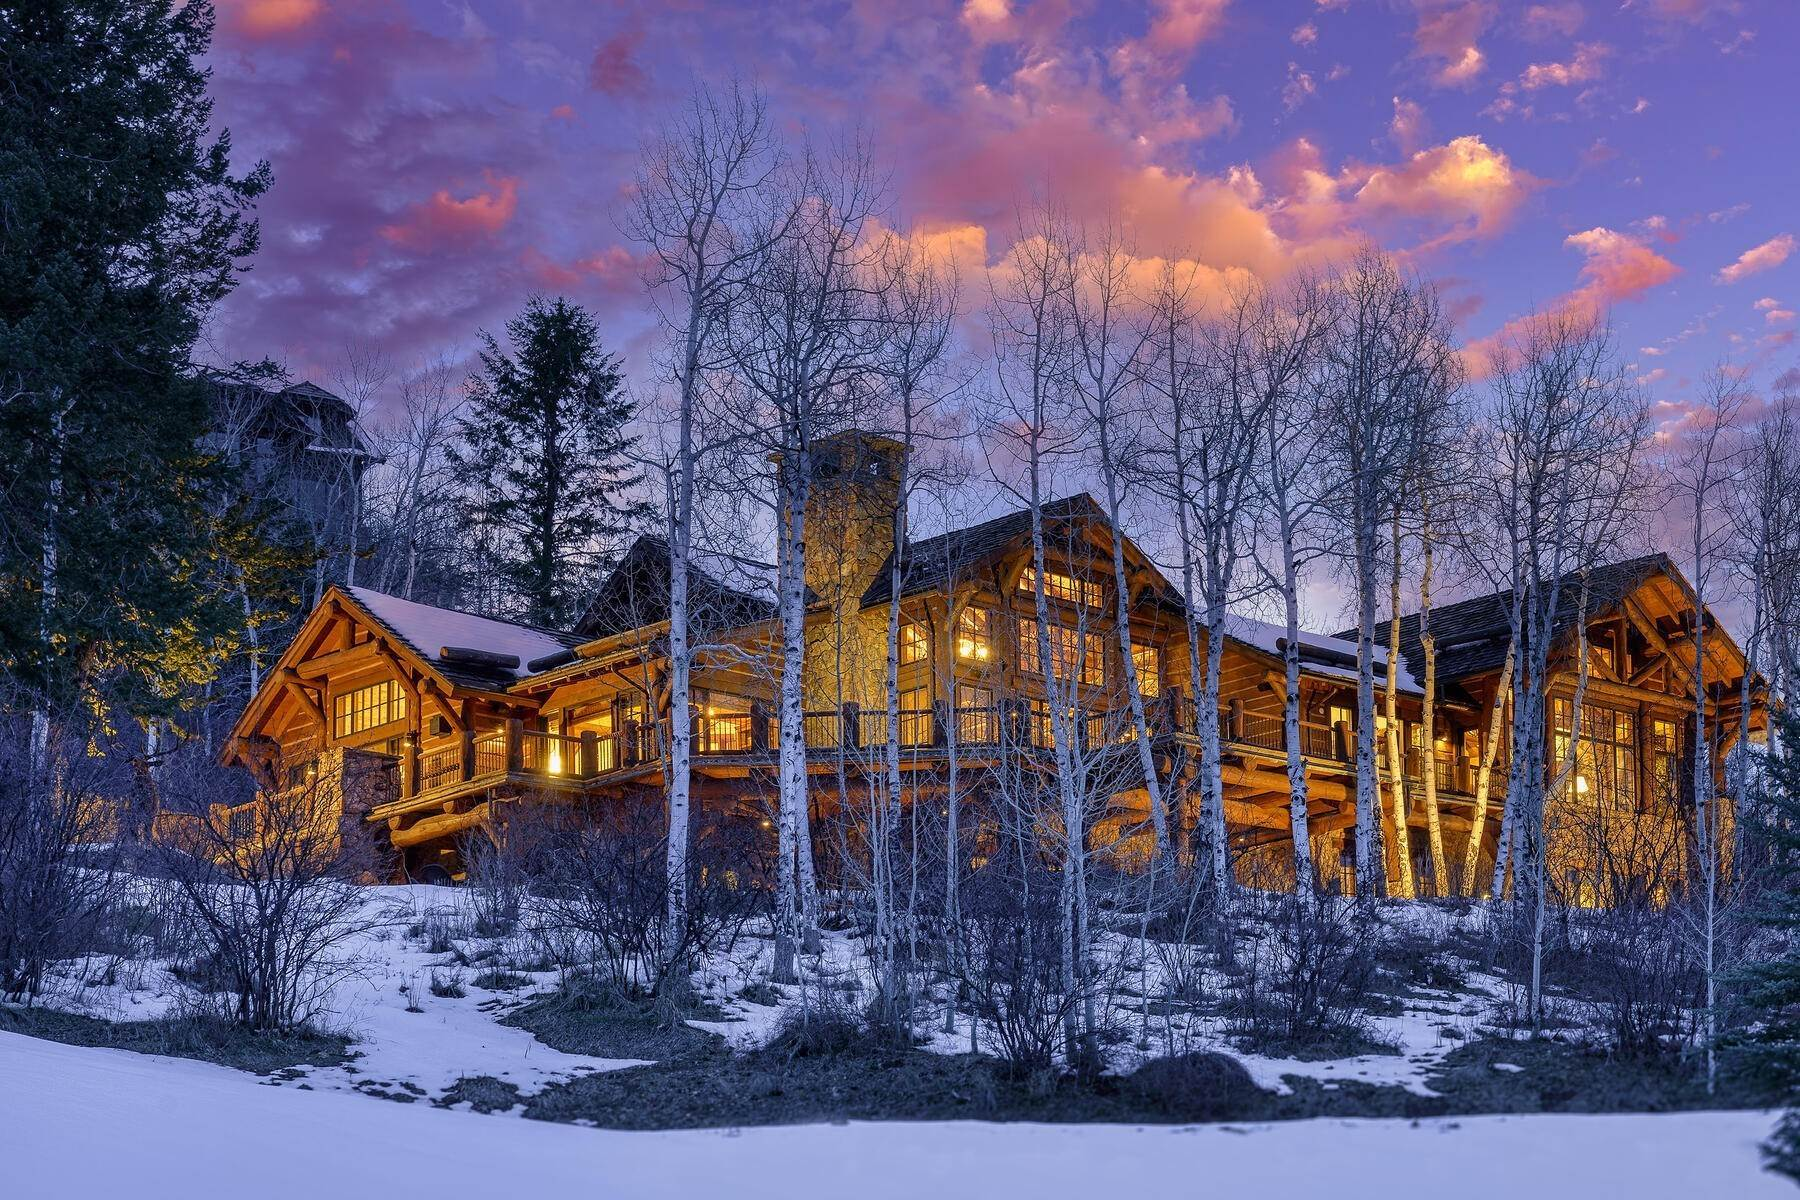 Single Family Homes for Active at Ski-in, ski-out residence with panoramic views 602 Bachelor Ridge Road Beaver Creek, Colorado 81620 United States